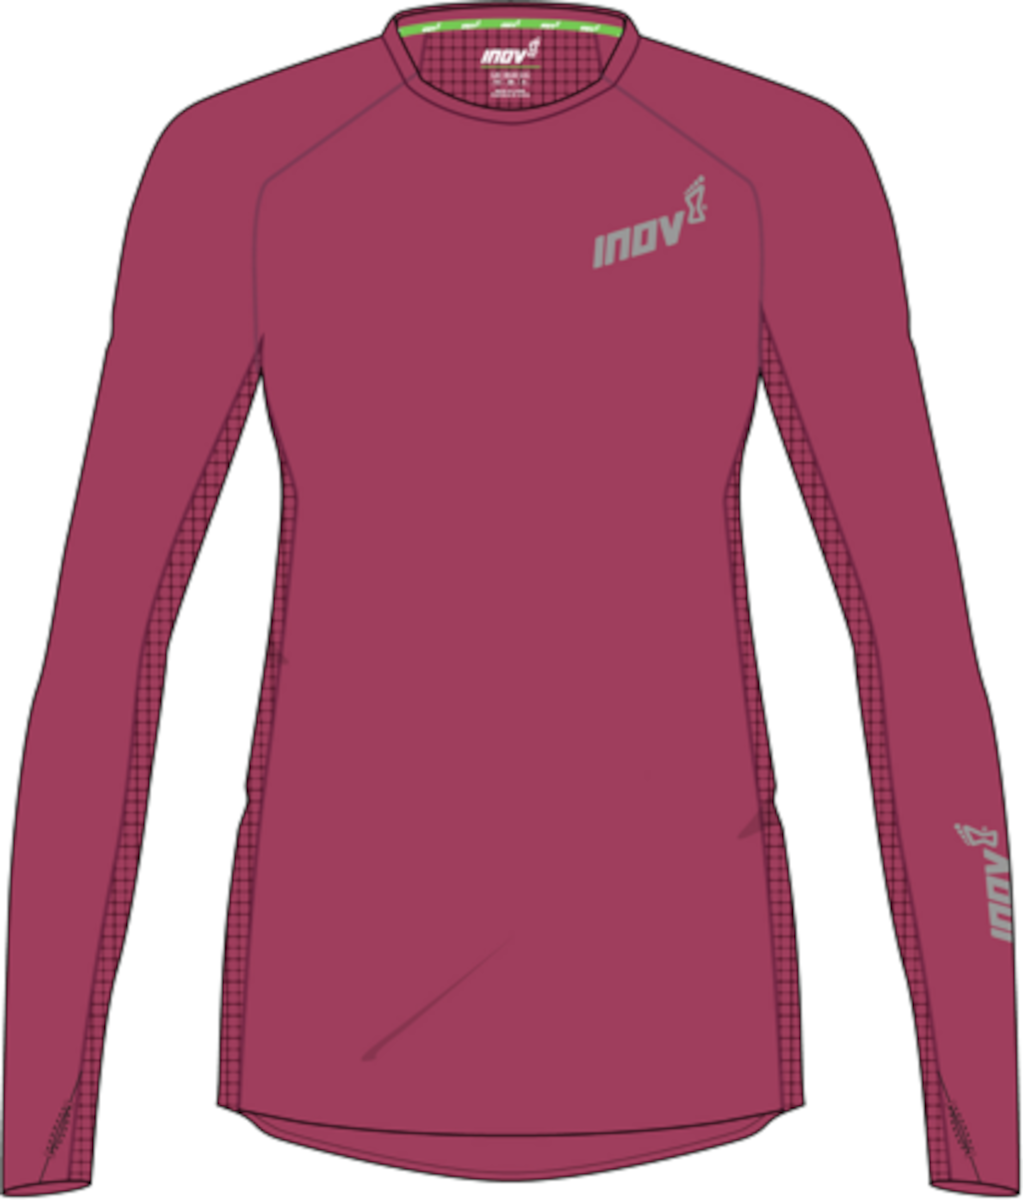 Tee-shirt à manches longues INOV-8 INOV-8 BASE ELITE LS W T-shirt